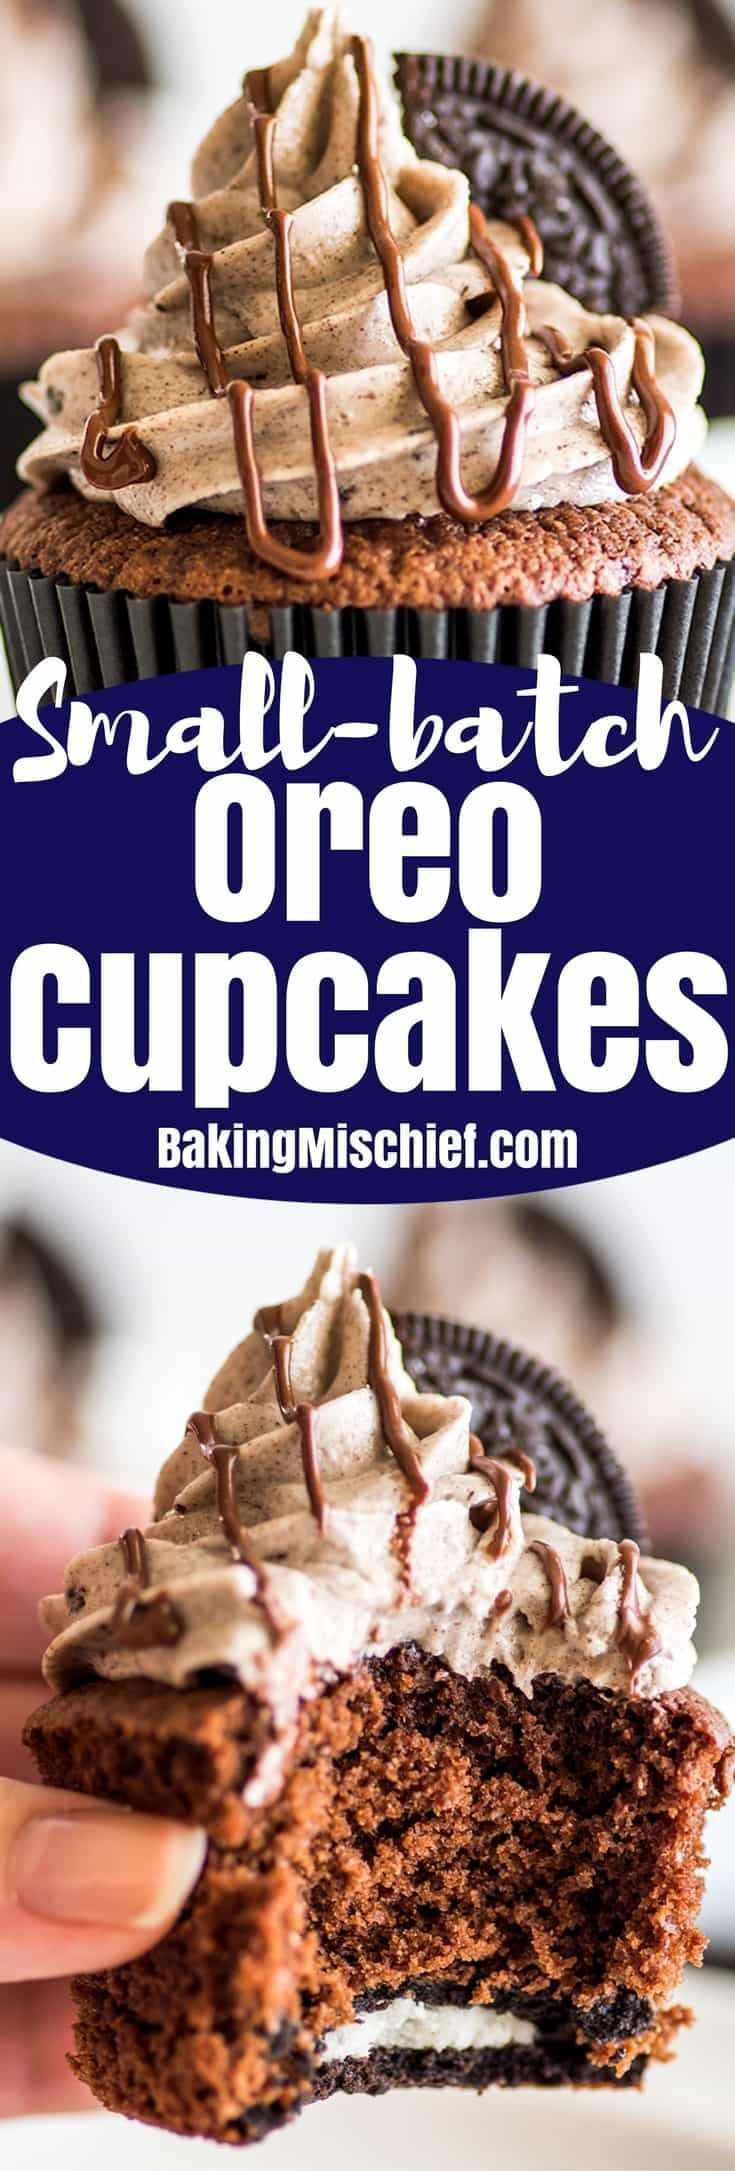 Small-batch Oreo Cupcakes, moist chocolate cupcakes with an Oreo baked right into them and the best Oreo frosting on top! | #cupcakes | #Oreos | Small-batch Desserts |